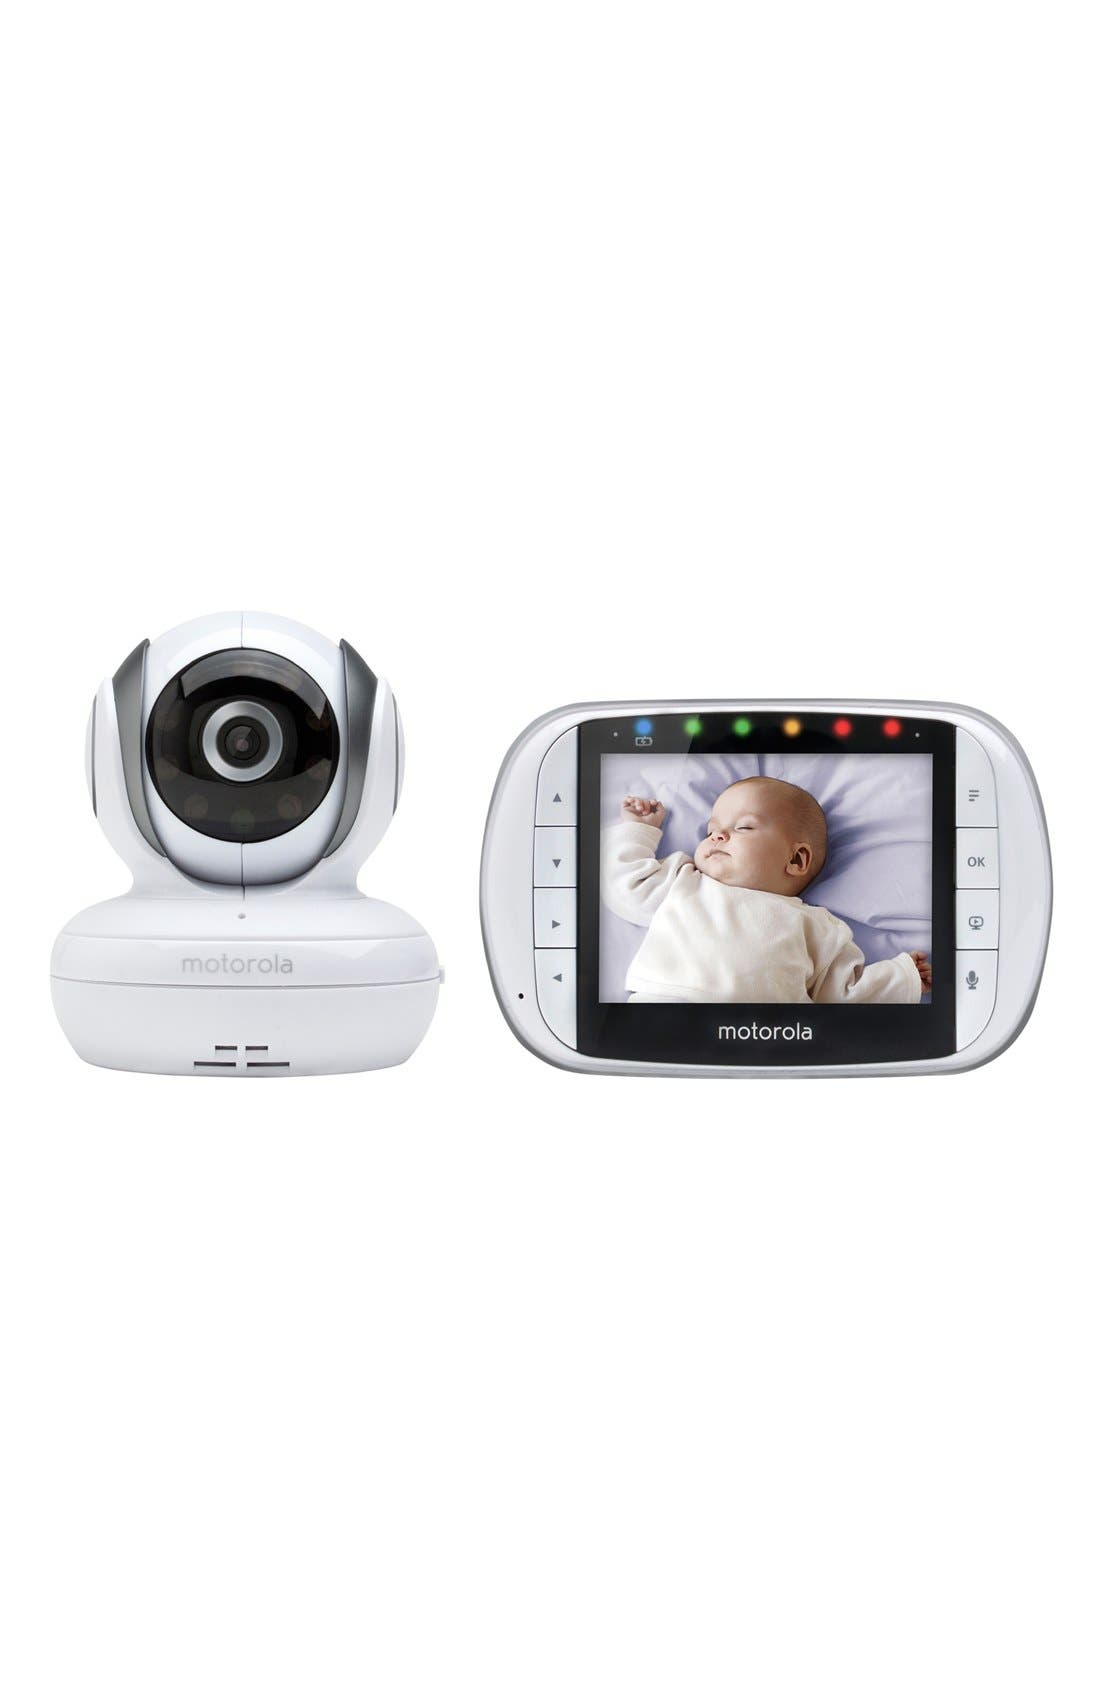 MOTOROLA MBP36S Wireless Digital Infrared Video Baby Monitor